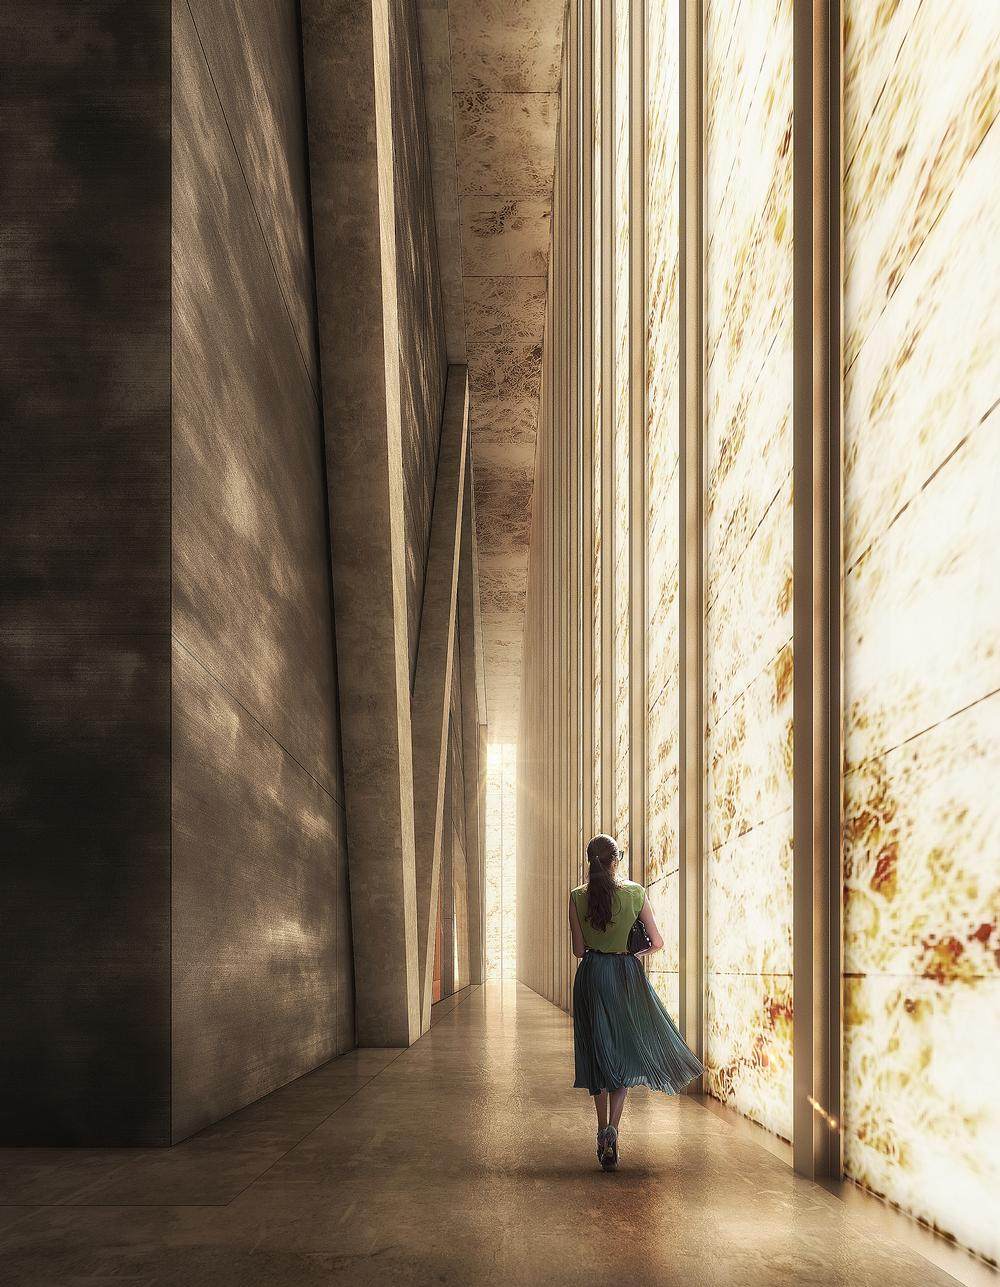 Daylight will illuminate the interior of the Perelman Performing Arts Center through the marble façade